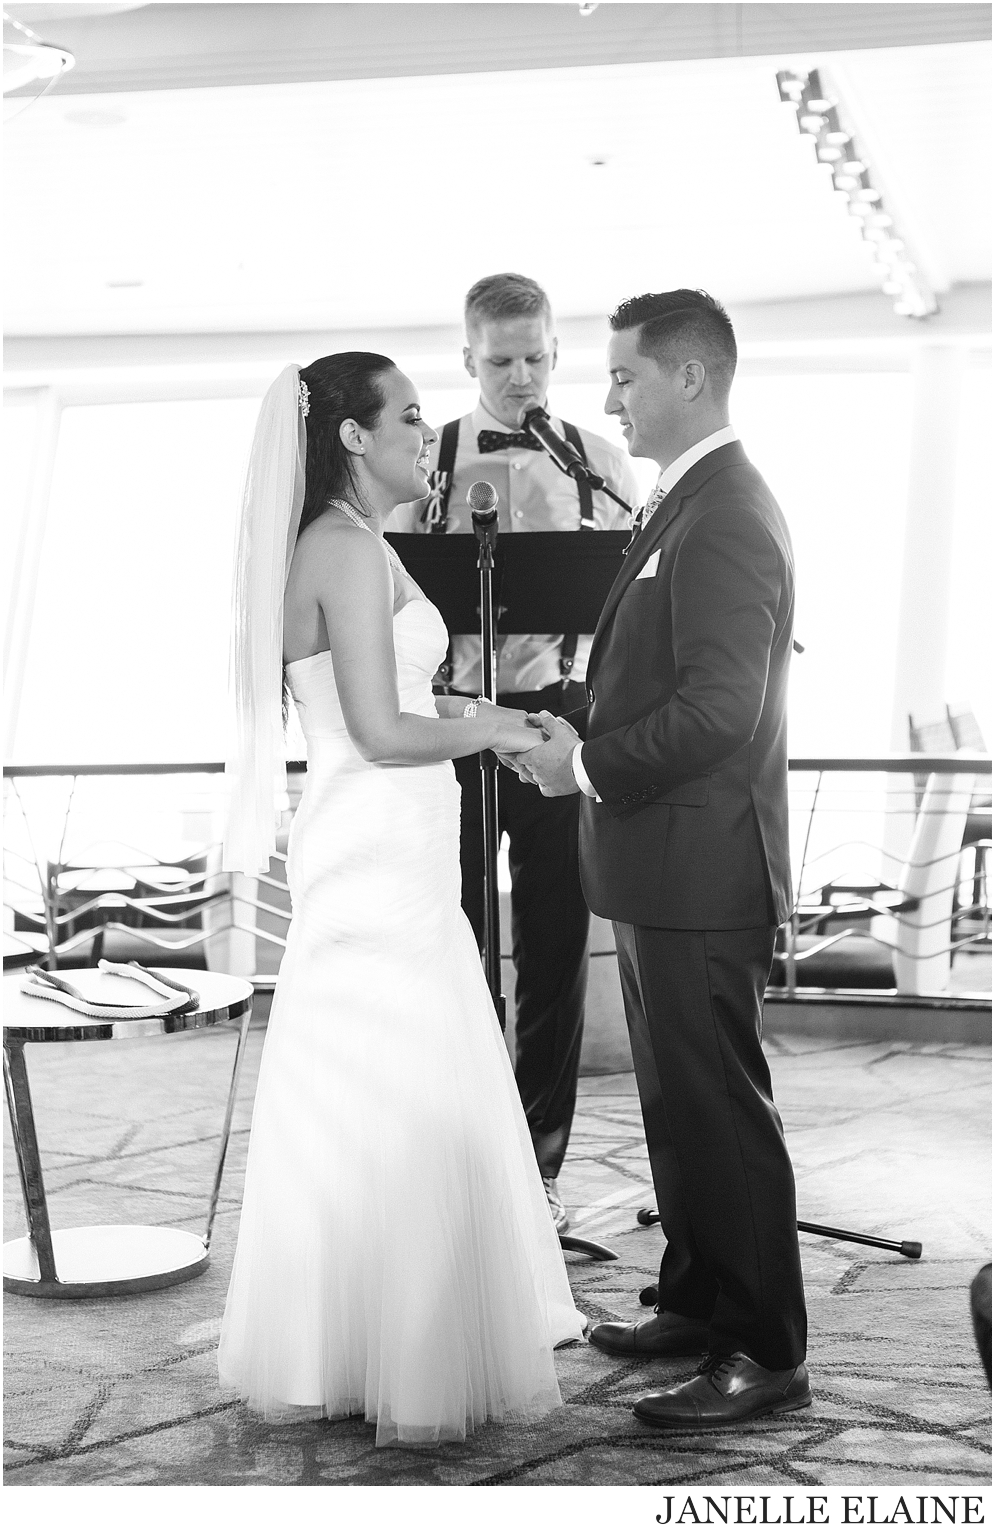 white wedding-royal caribbean-janelle elaine photography-361.jpg